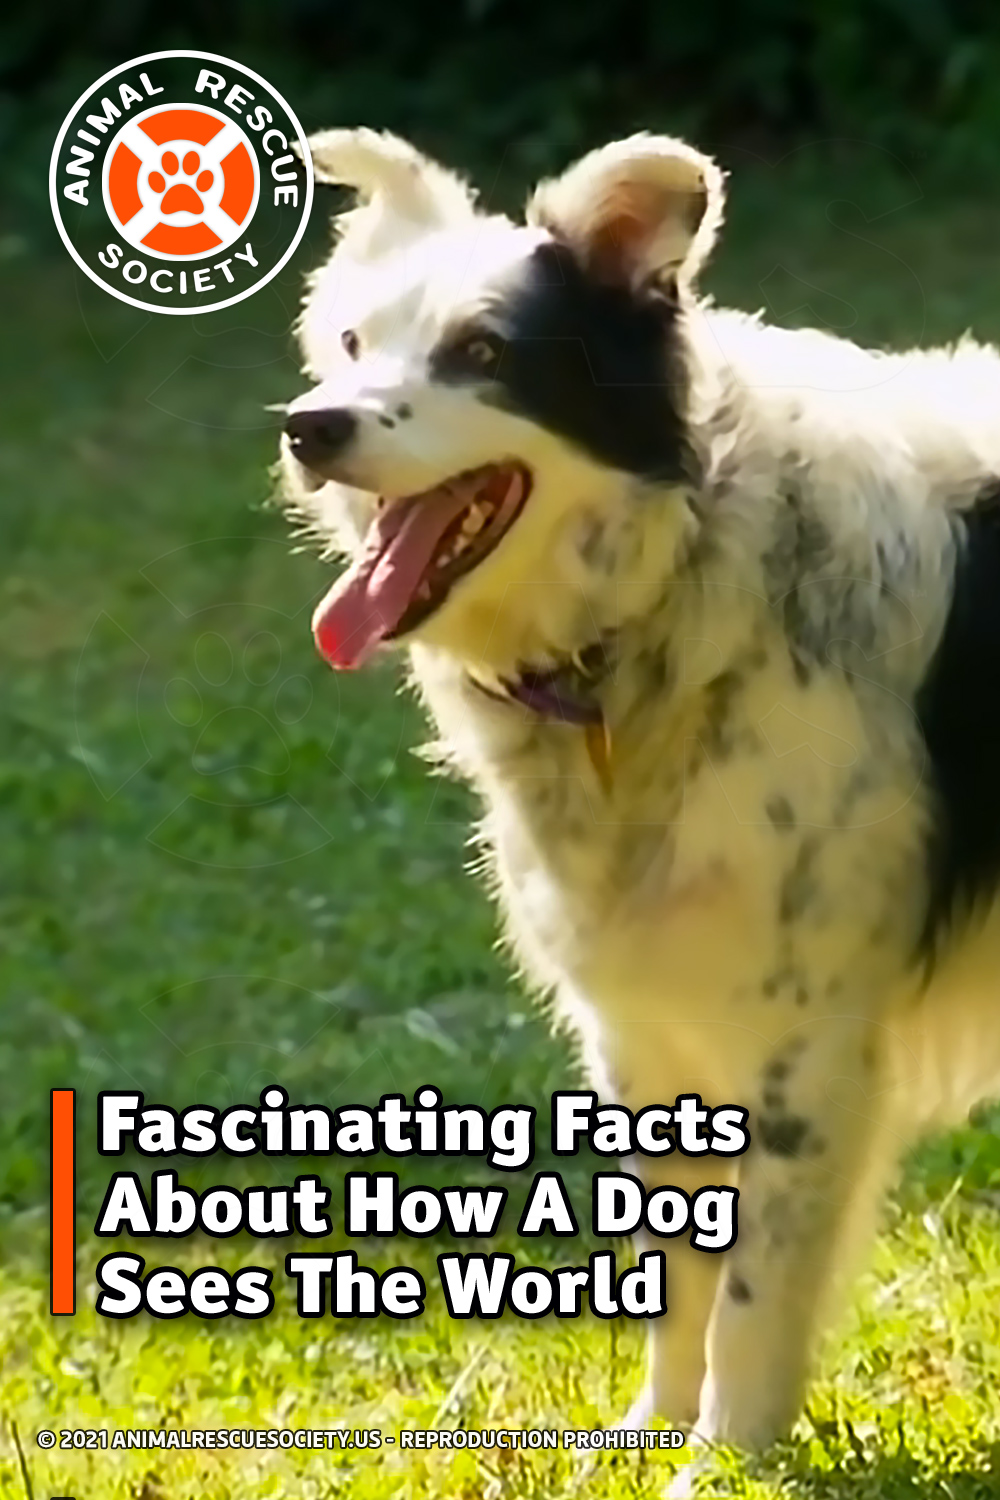 Fascinating Facts About How A Dog Sees The World